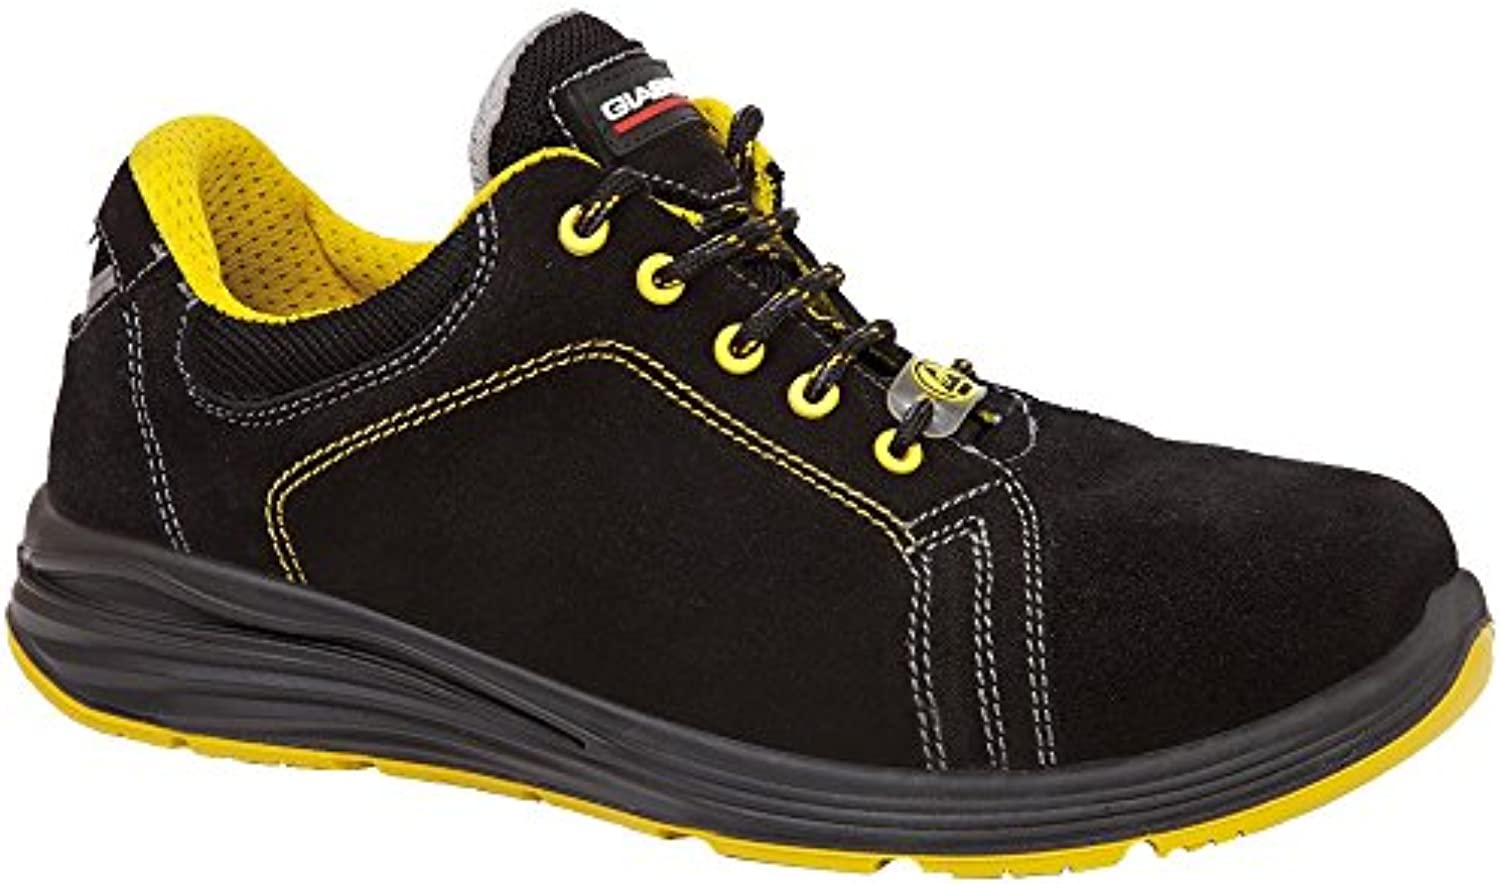 Giasco up025h39 Aries – Zapatos de seguridad bajo S3 negro/amarillo